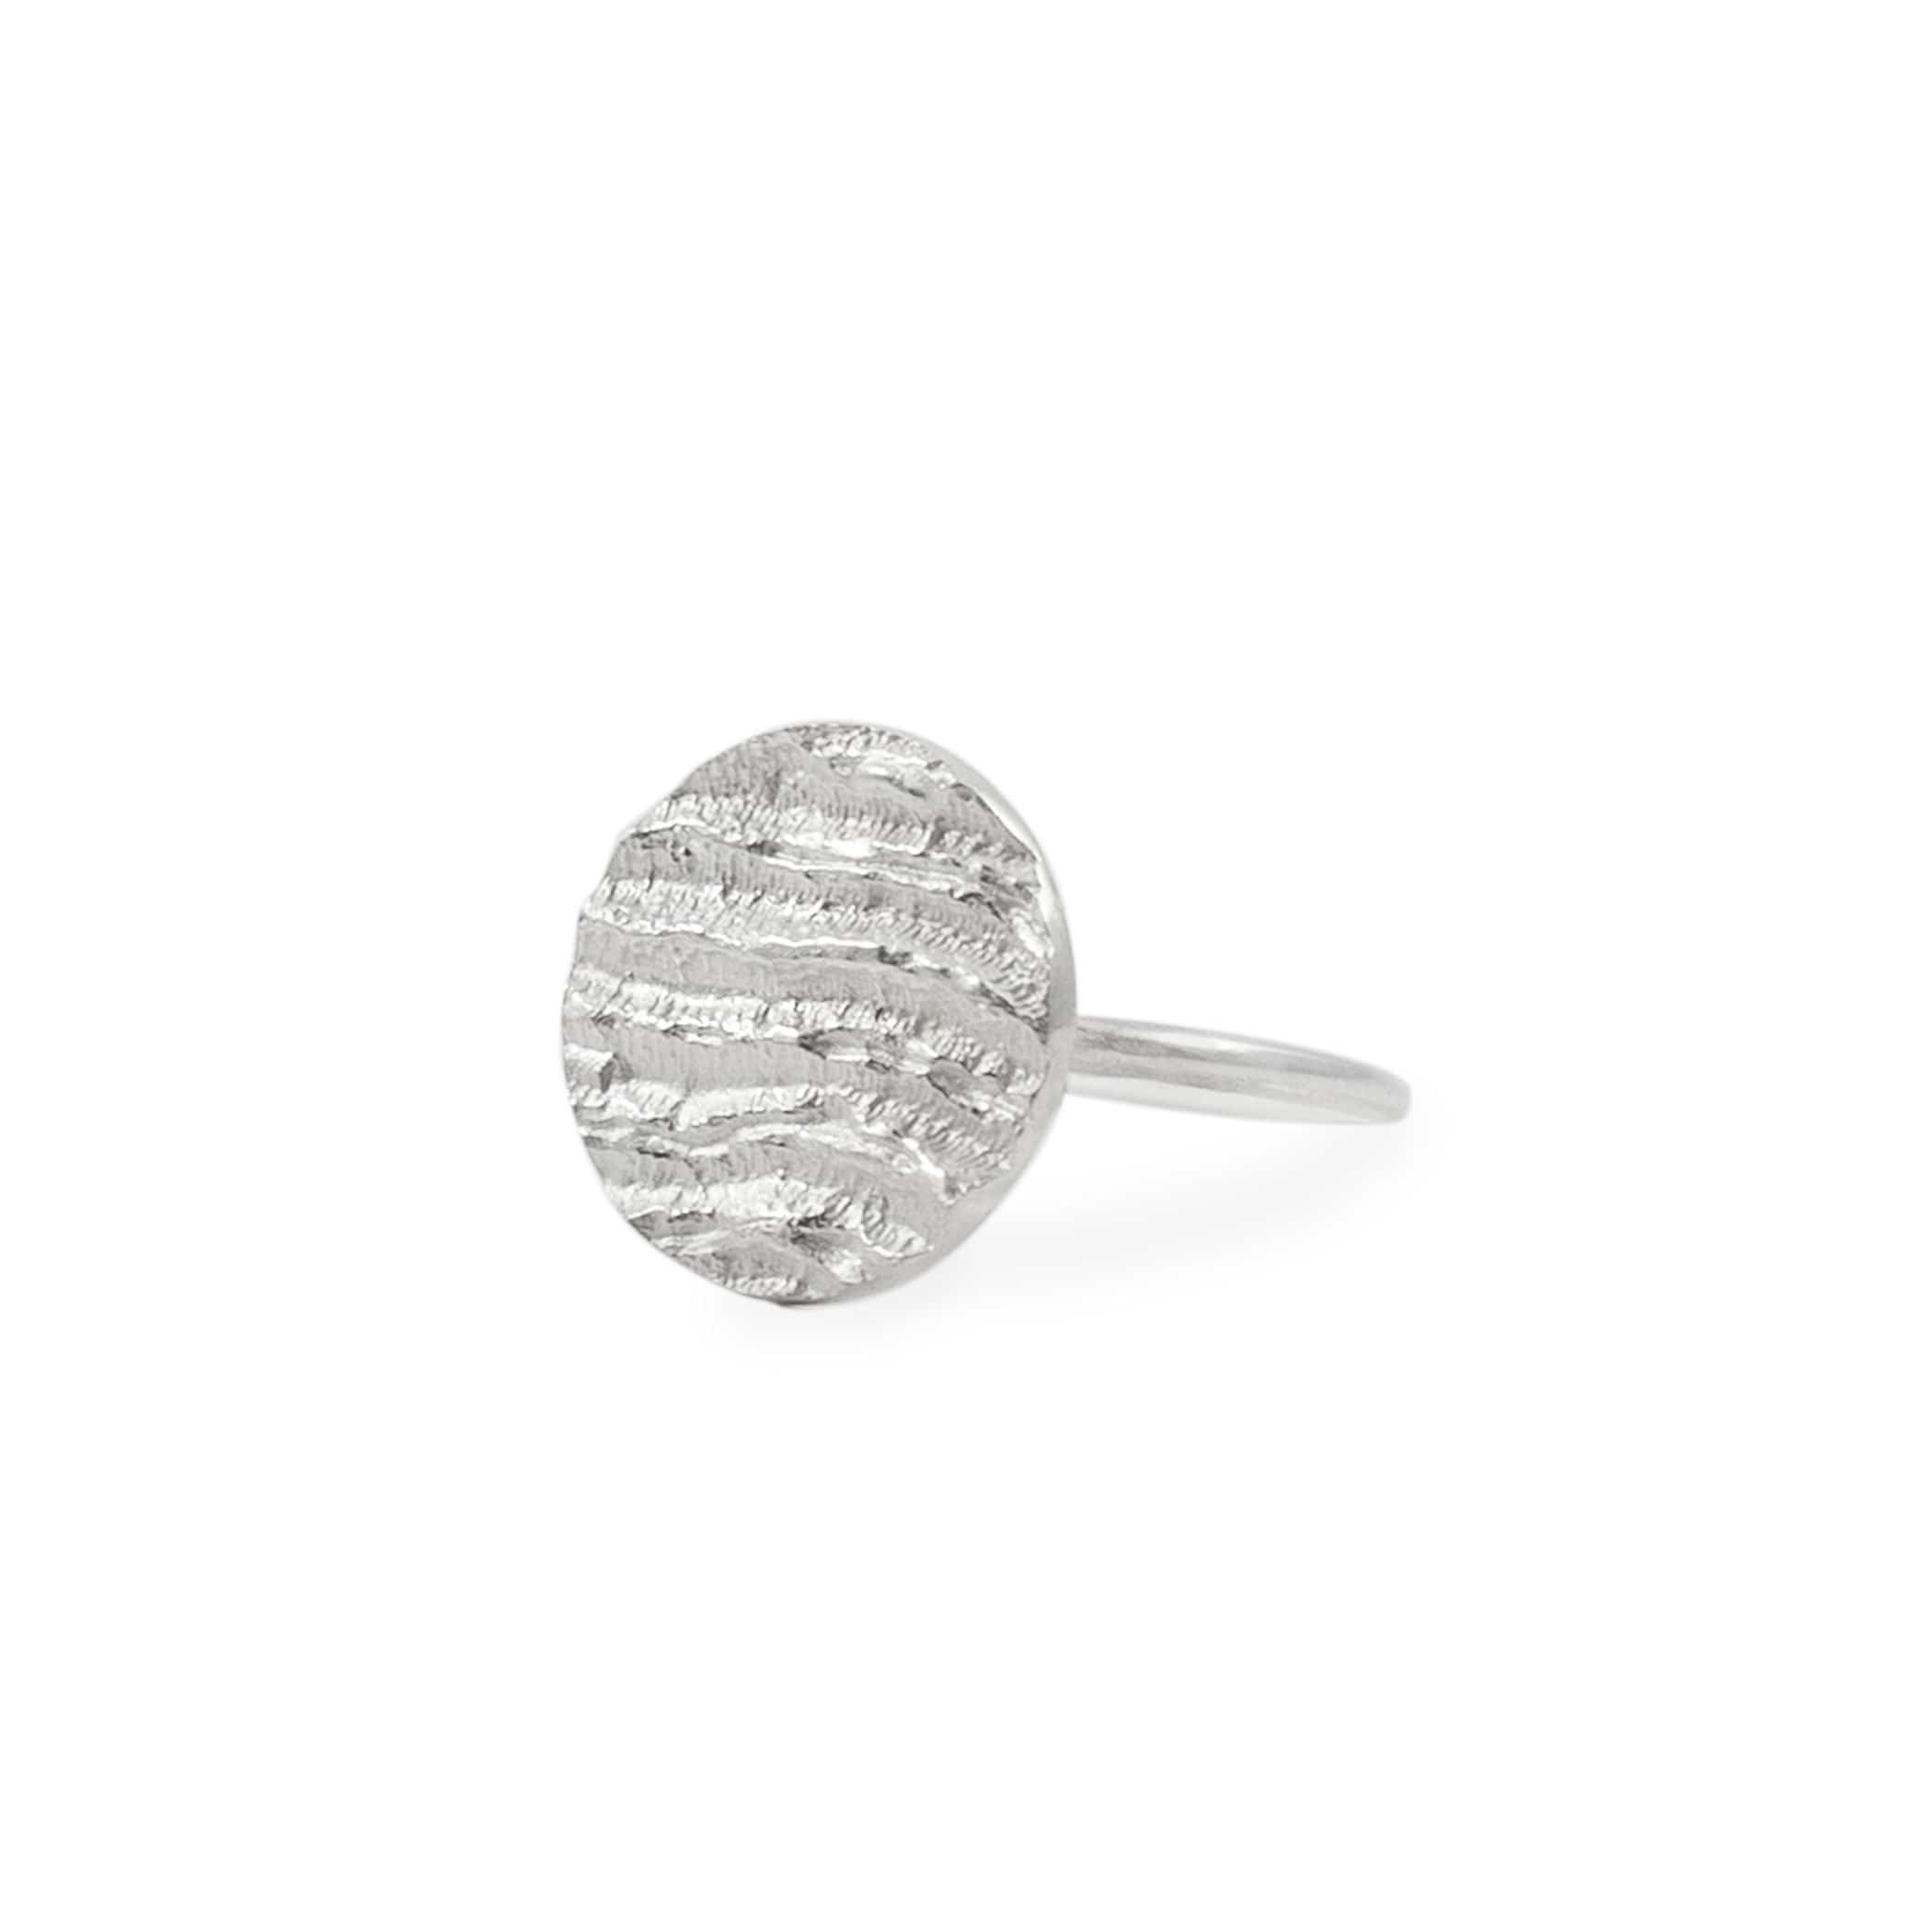 Small Round Ring - Silver